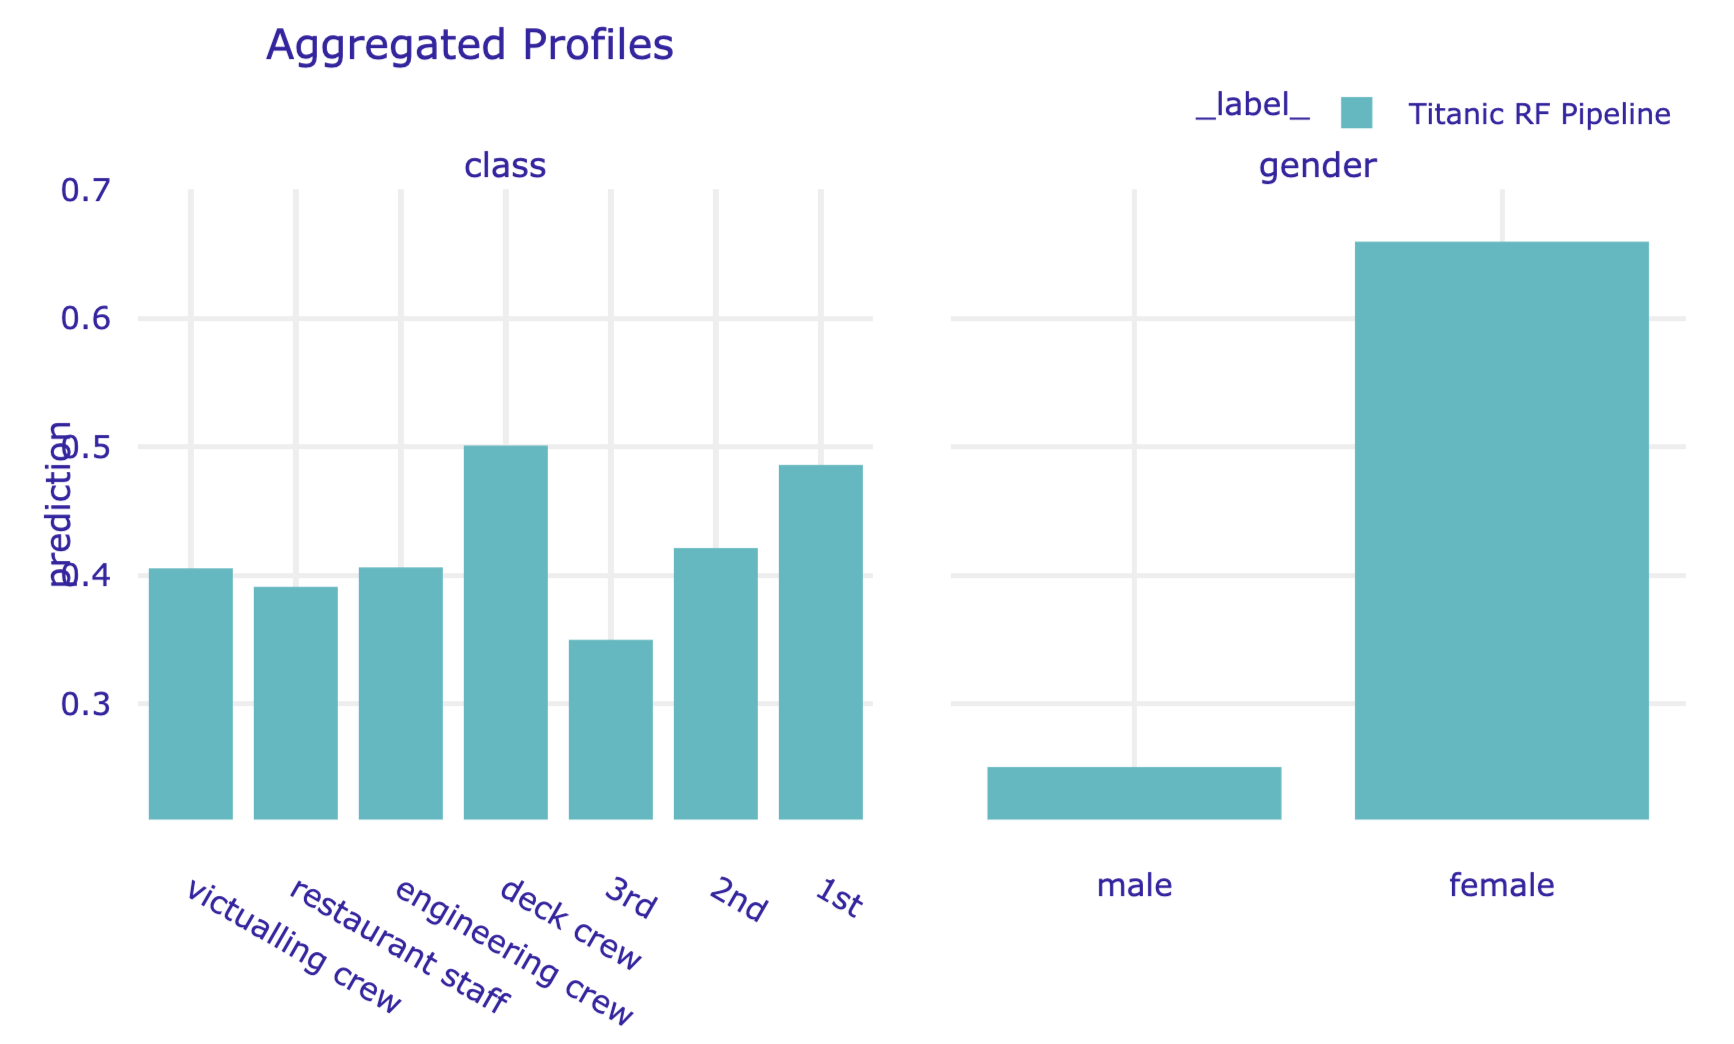 Partial-dependence profiles for class and gender for the random forest model for the Titanic data, obtained by using the plot() method in Python.